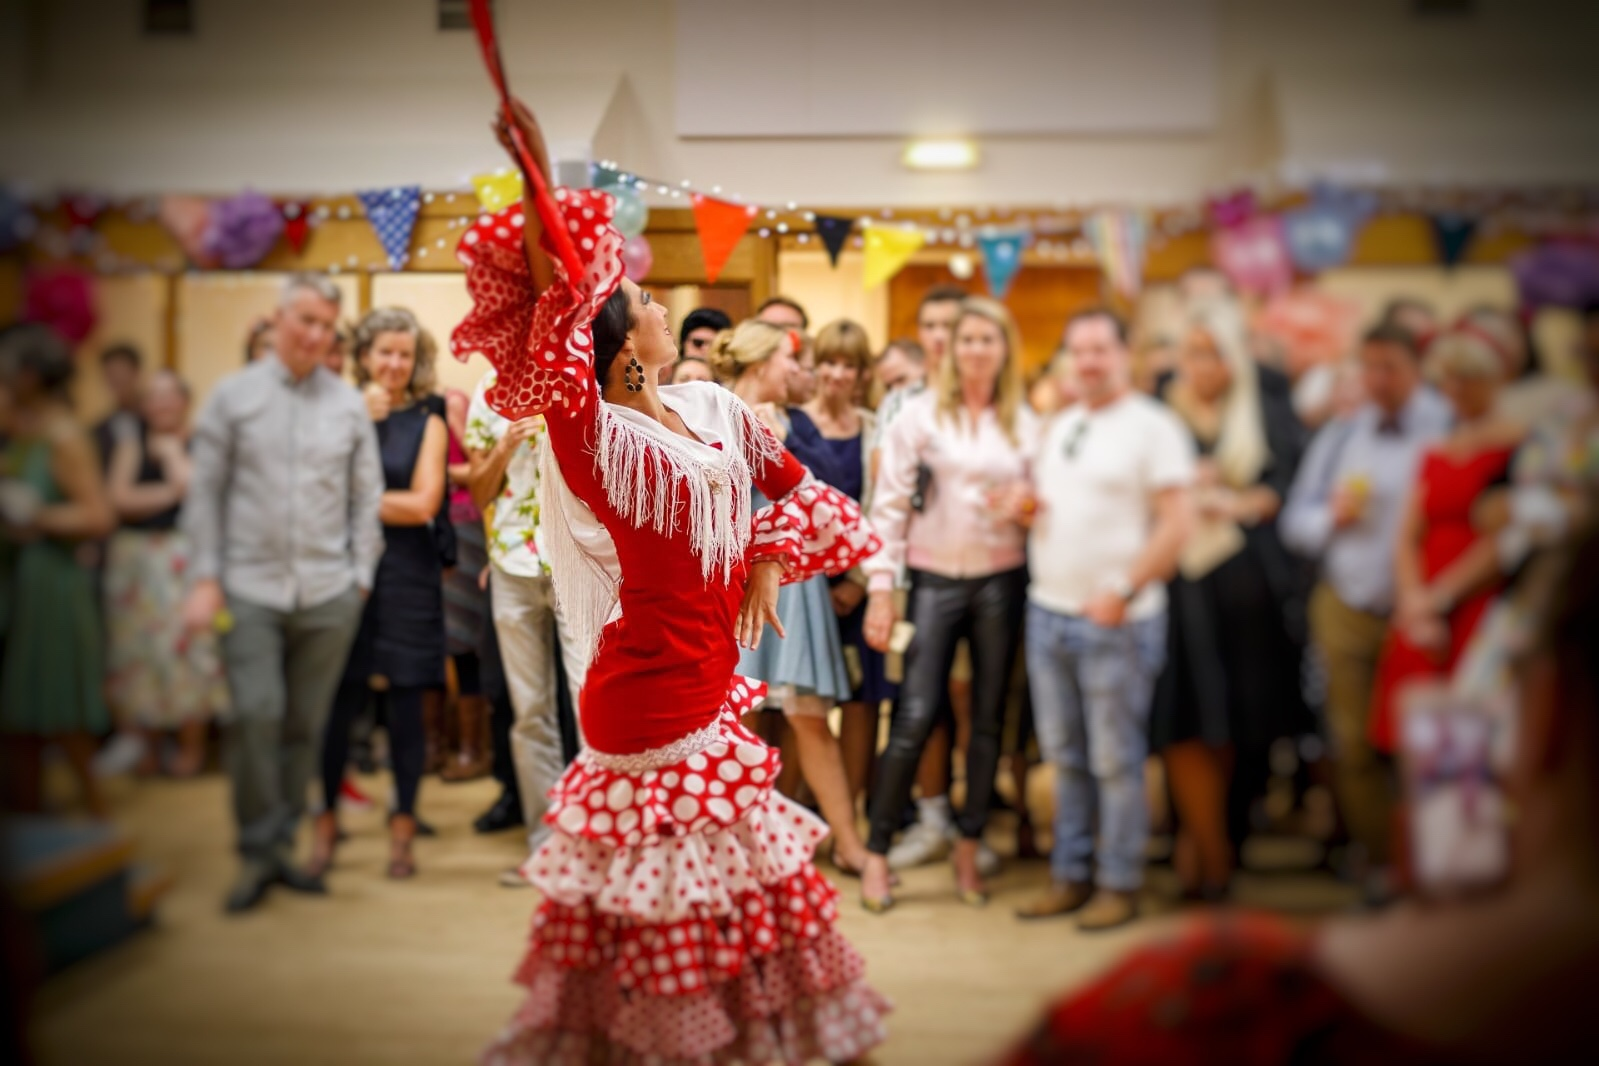 Flamenco dancer at birthday party